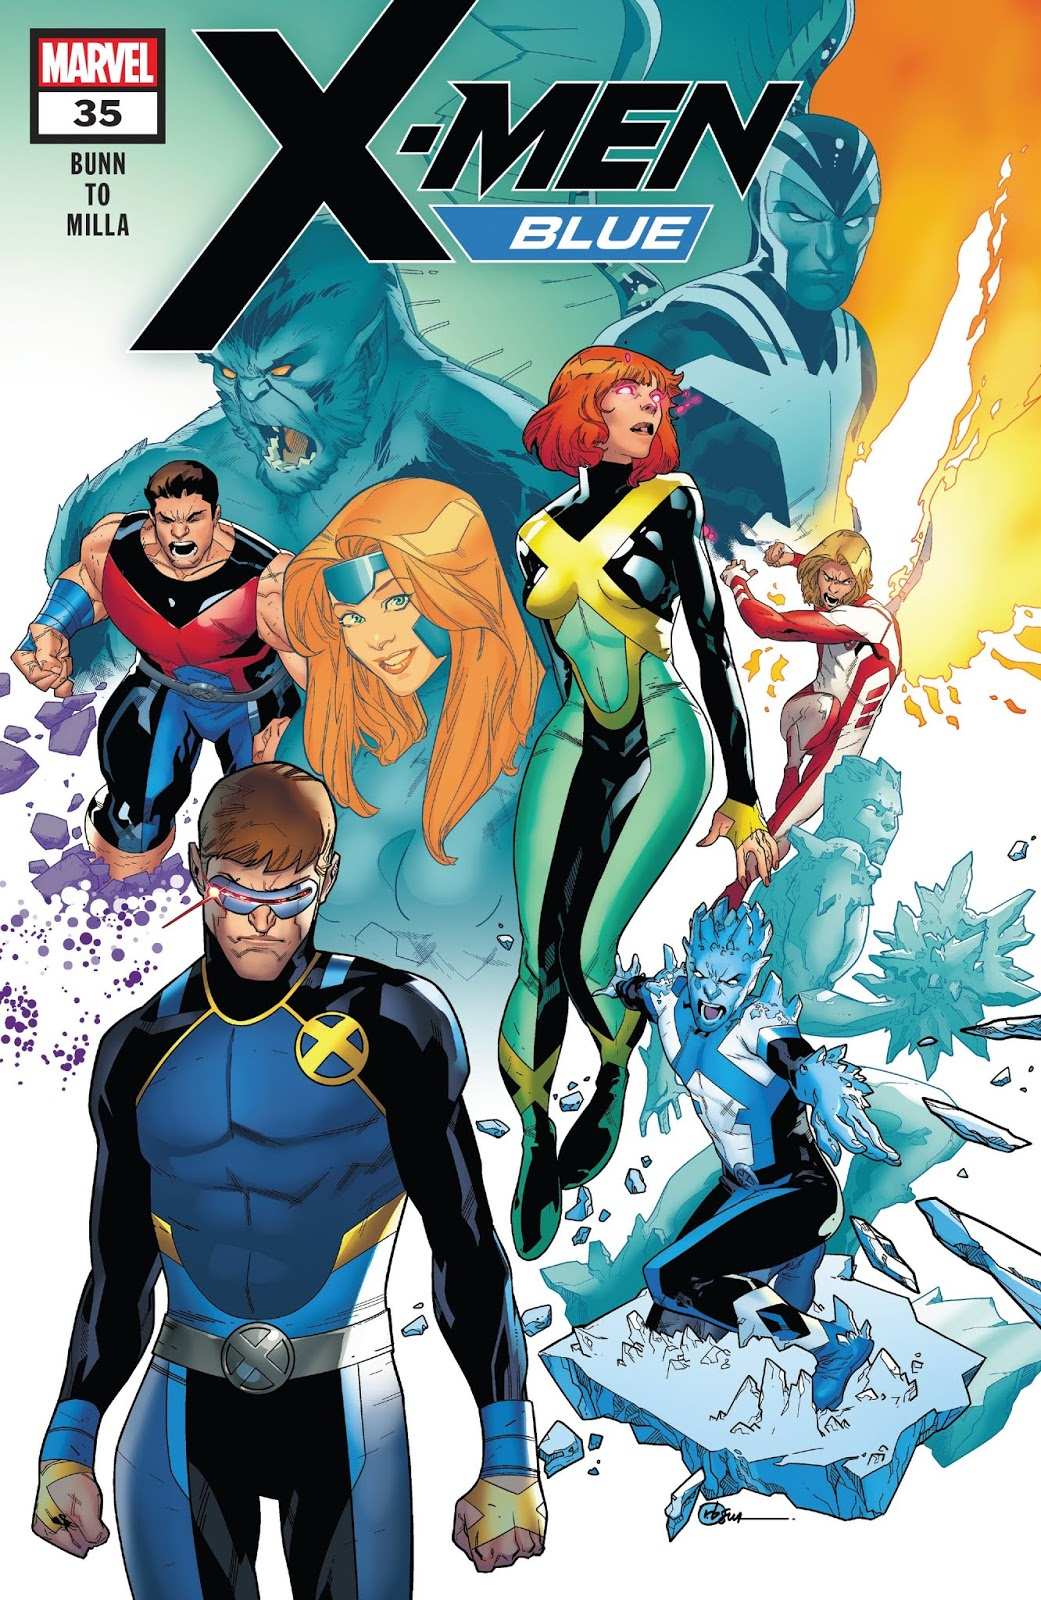 The Original Rider Waite Deck By Arthur Edward Waite: Marvel Comics Universe & X-Men Blue #35 Spoilers: What Is